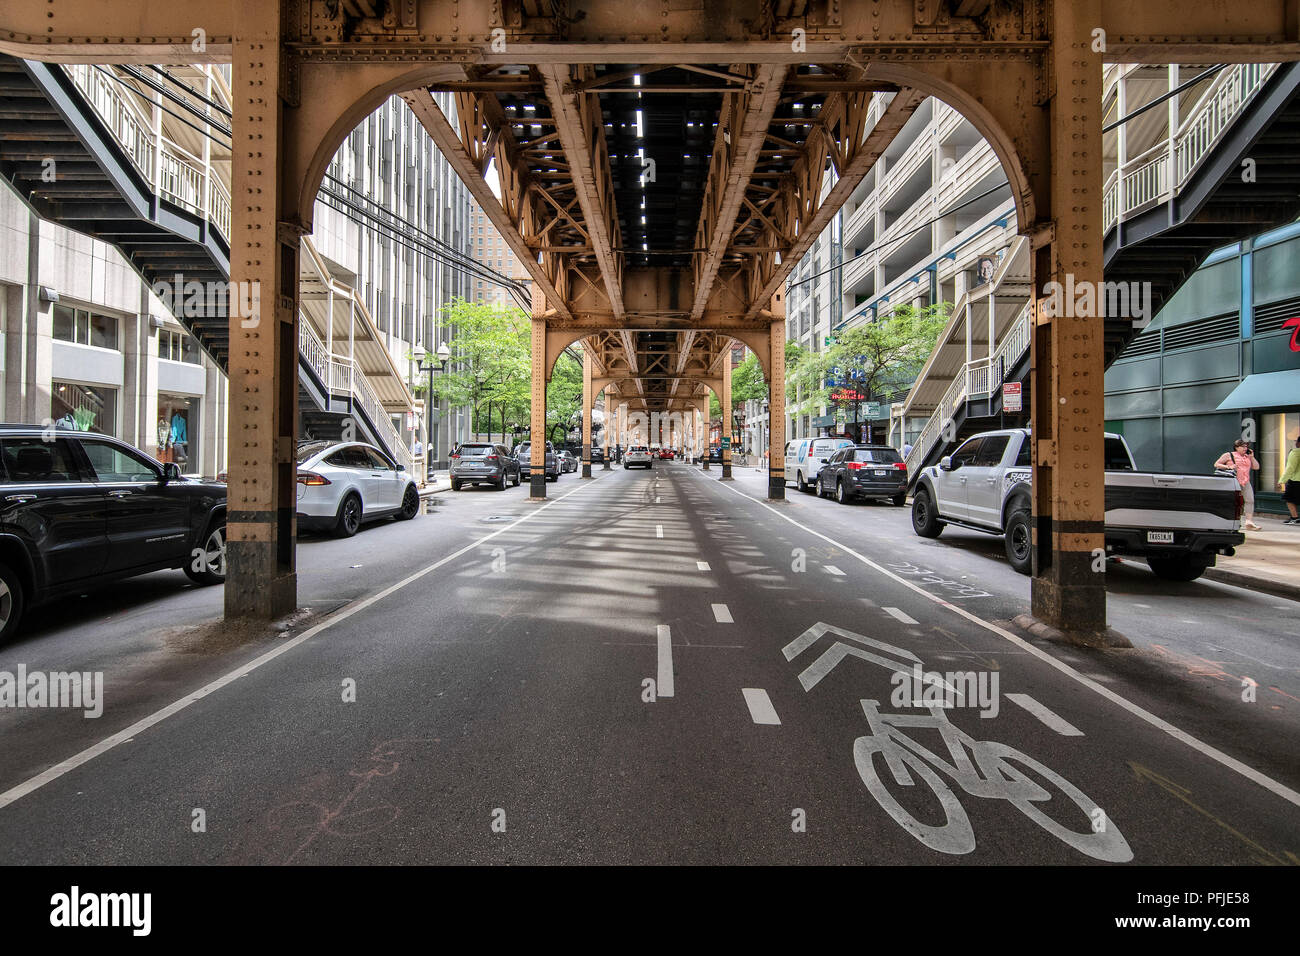 Downtown Chicago, The L elevated tracks in the Chicago Loop,  Chicago. - Stock Image